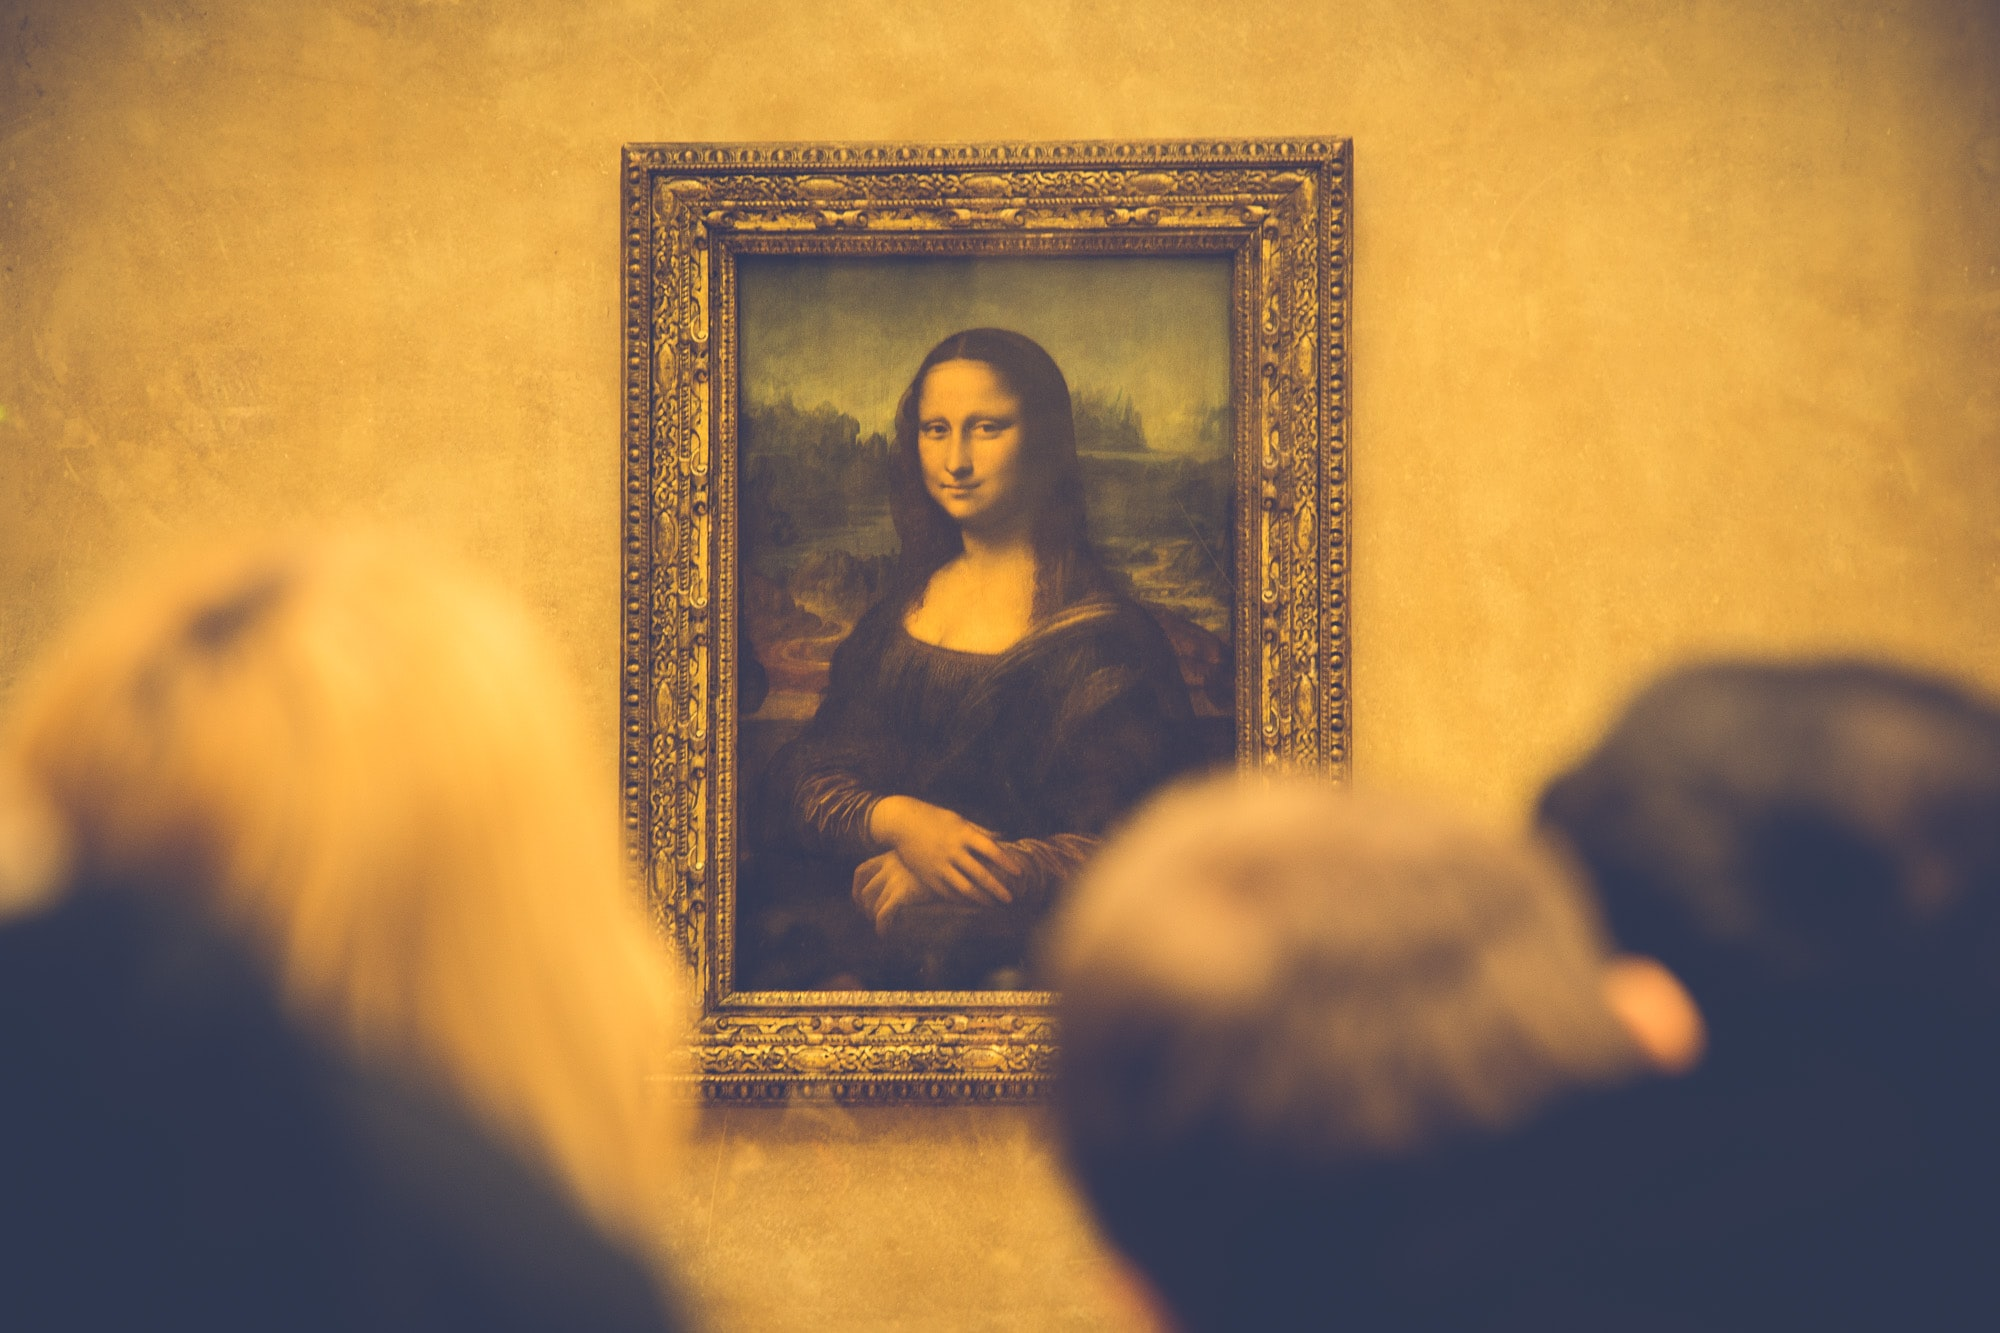 People admiring iconic Mona Lisa painting in Joconde, Louvre